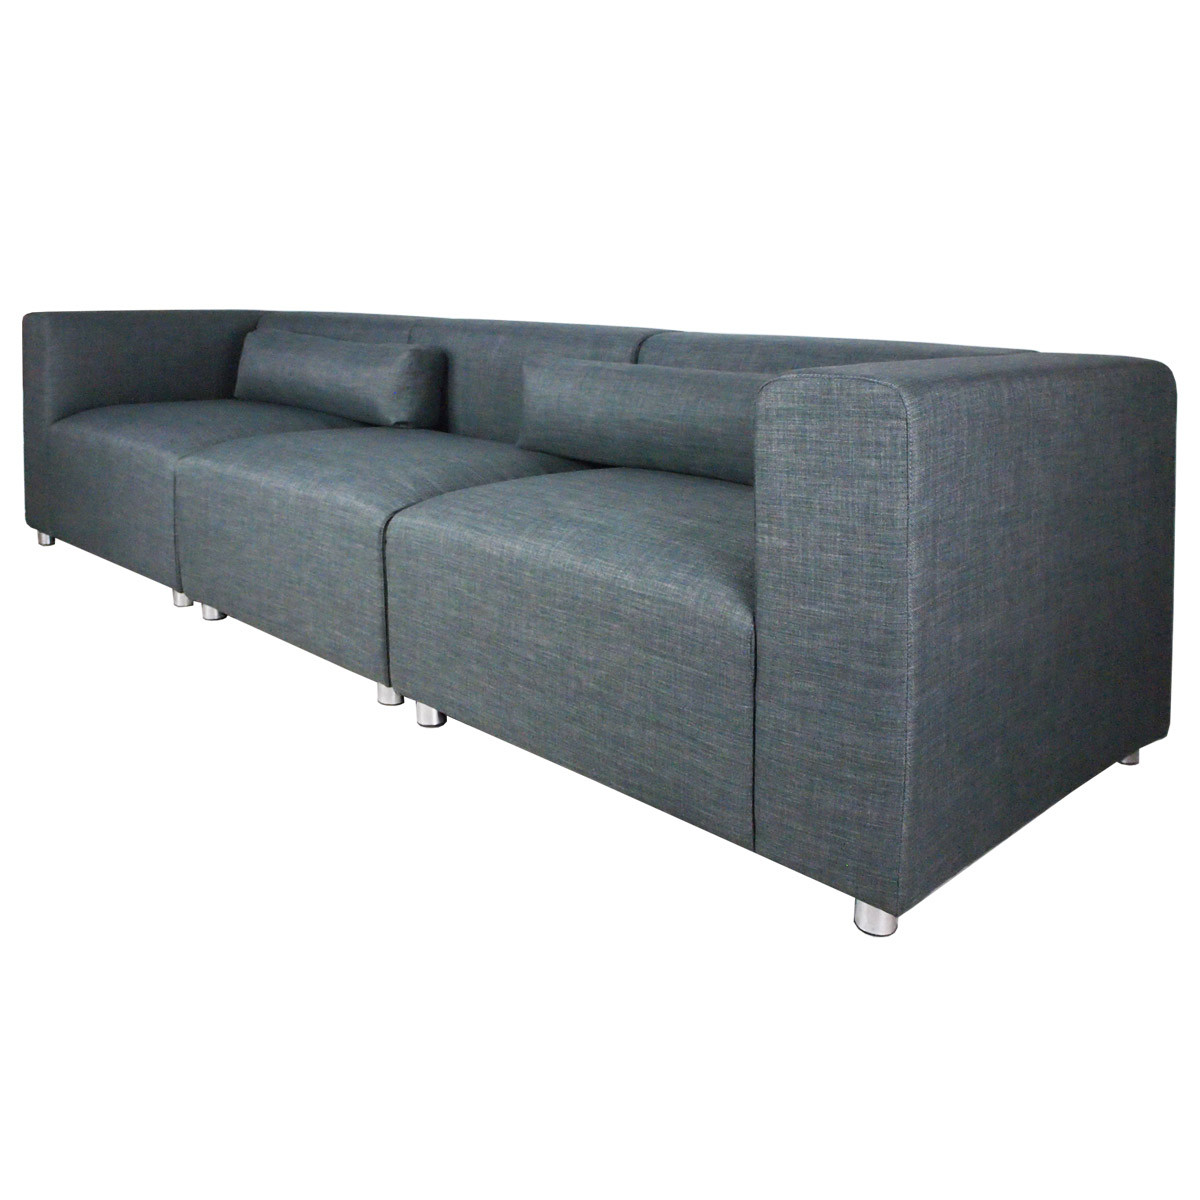 Sectional Sofa Sale Houston: Houston 3 Seater Sofa Grey (3 Piece)